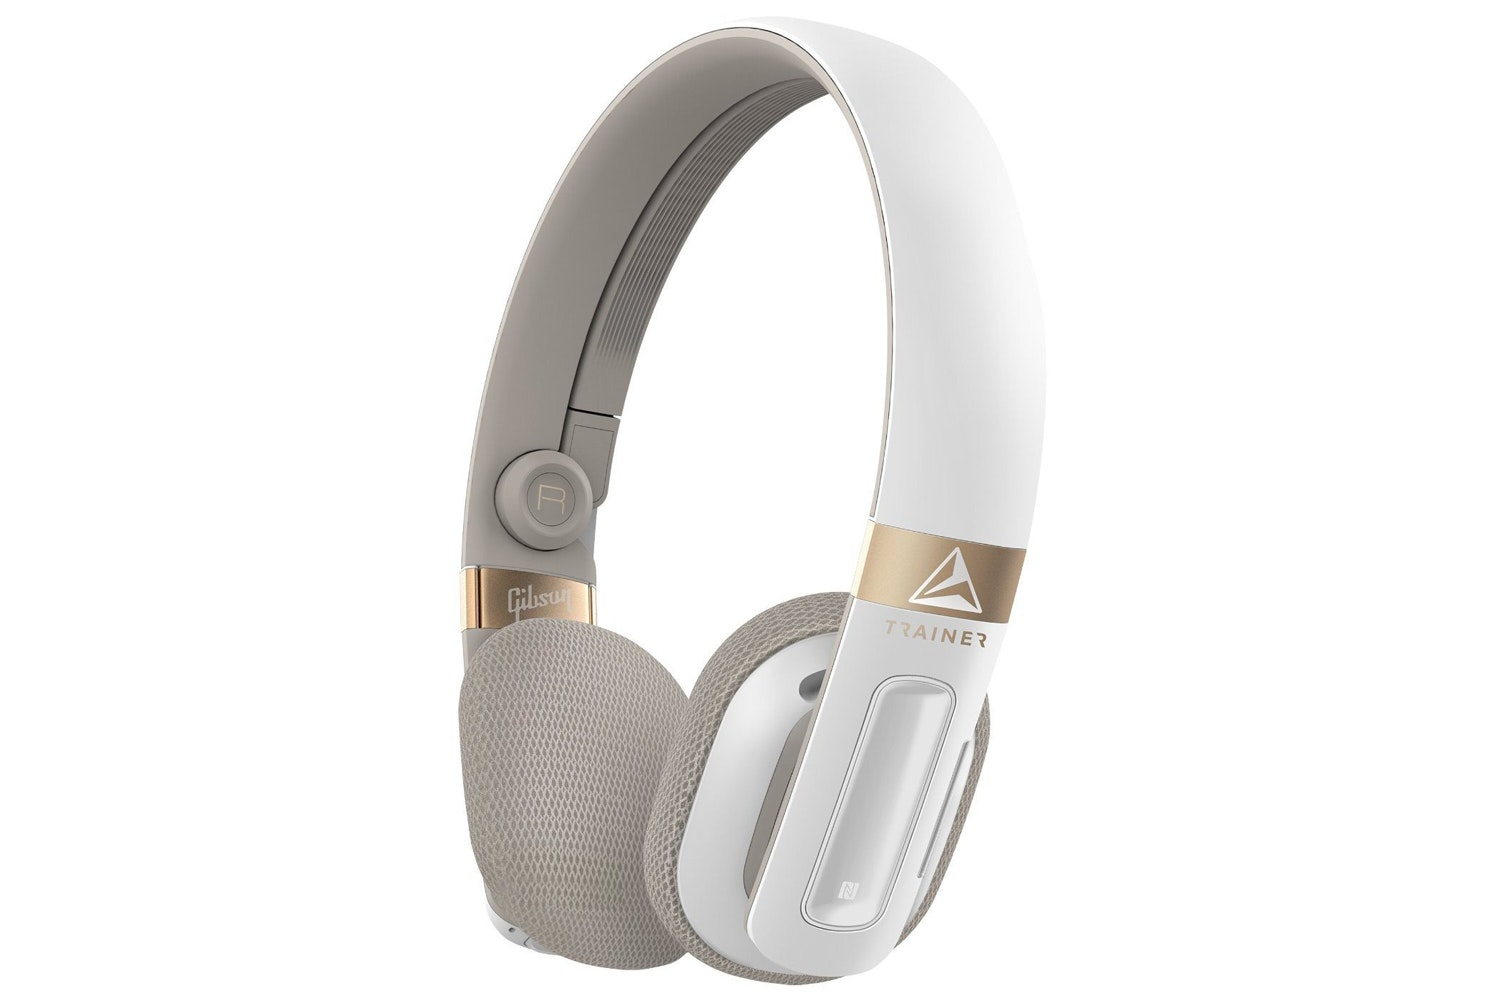 Gibson Trainer Wireless Headphones White | TH100WT/00